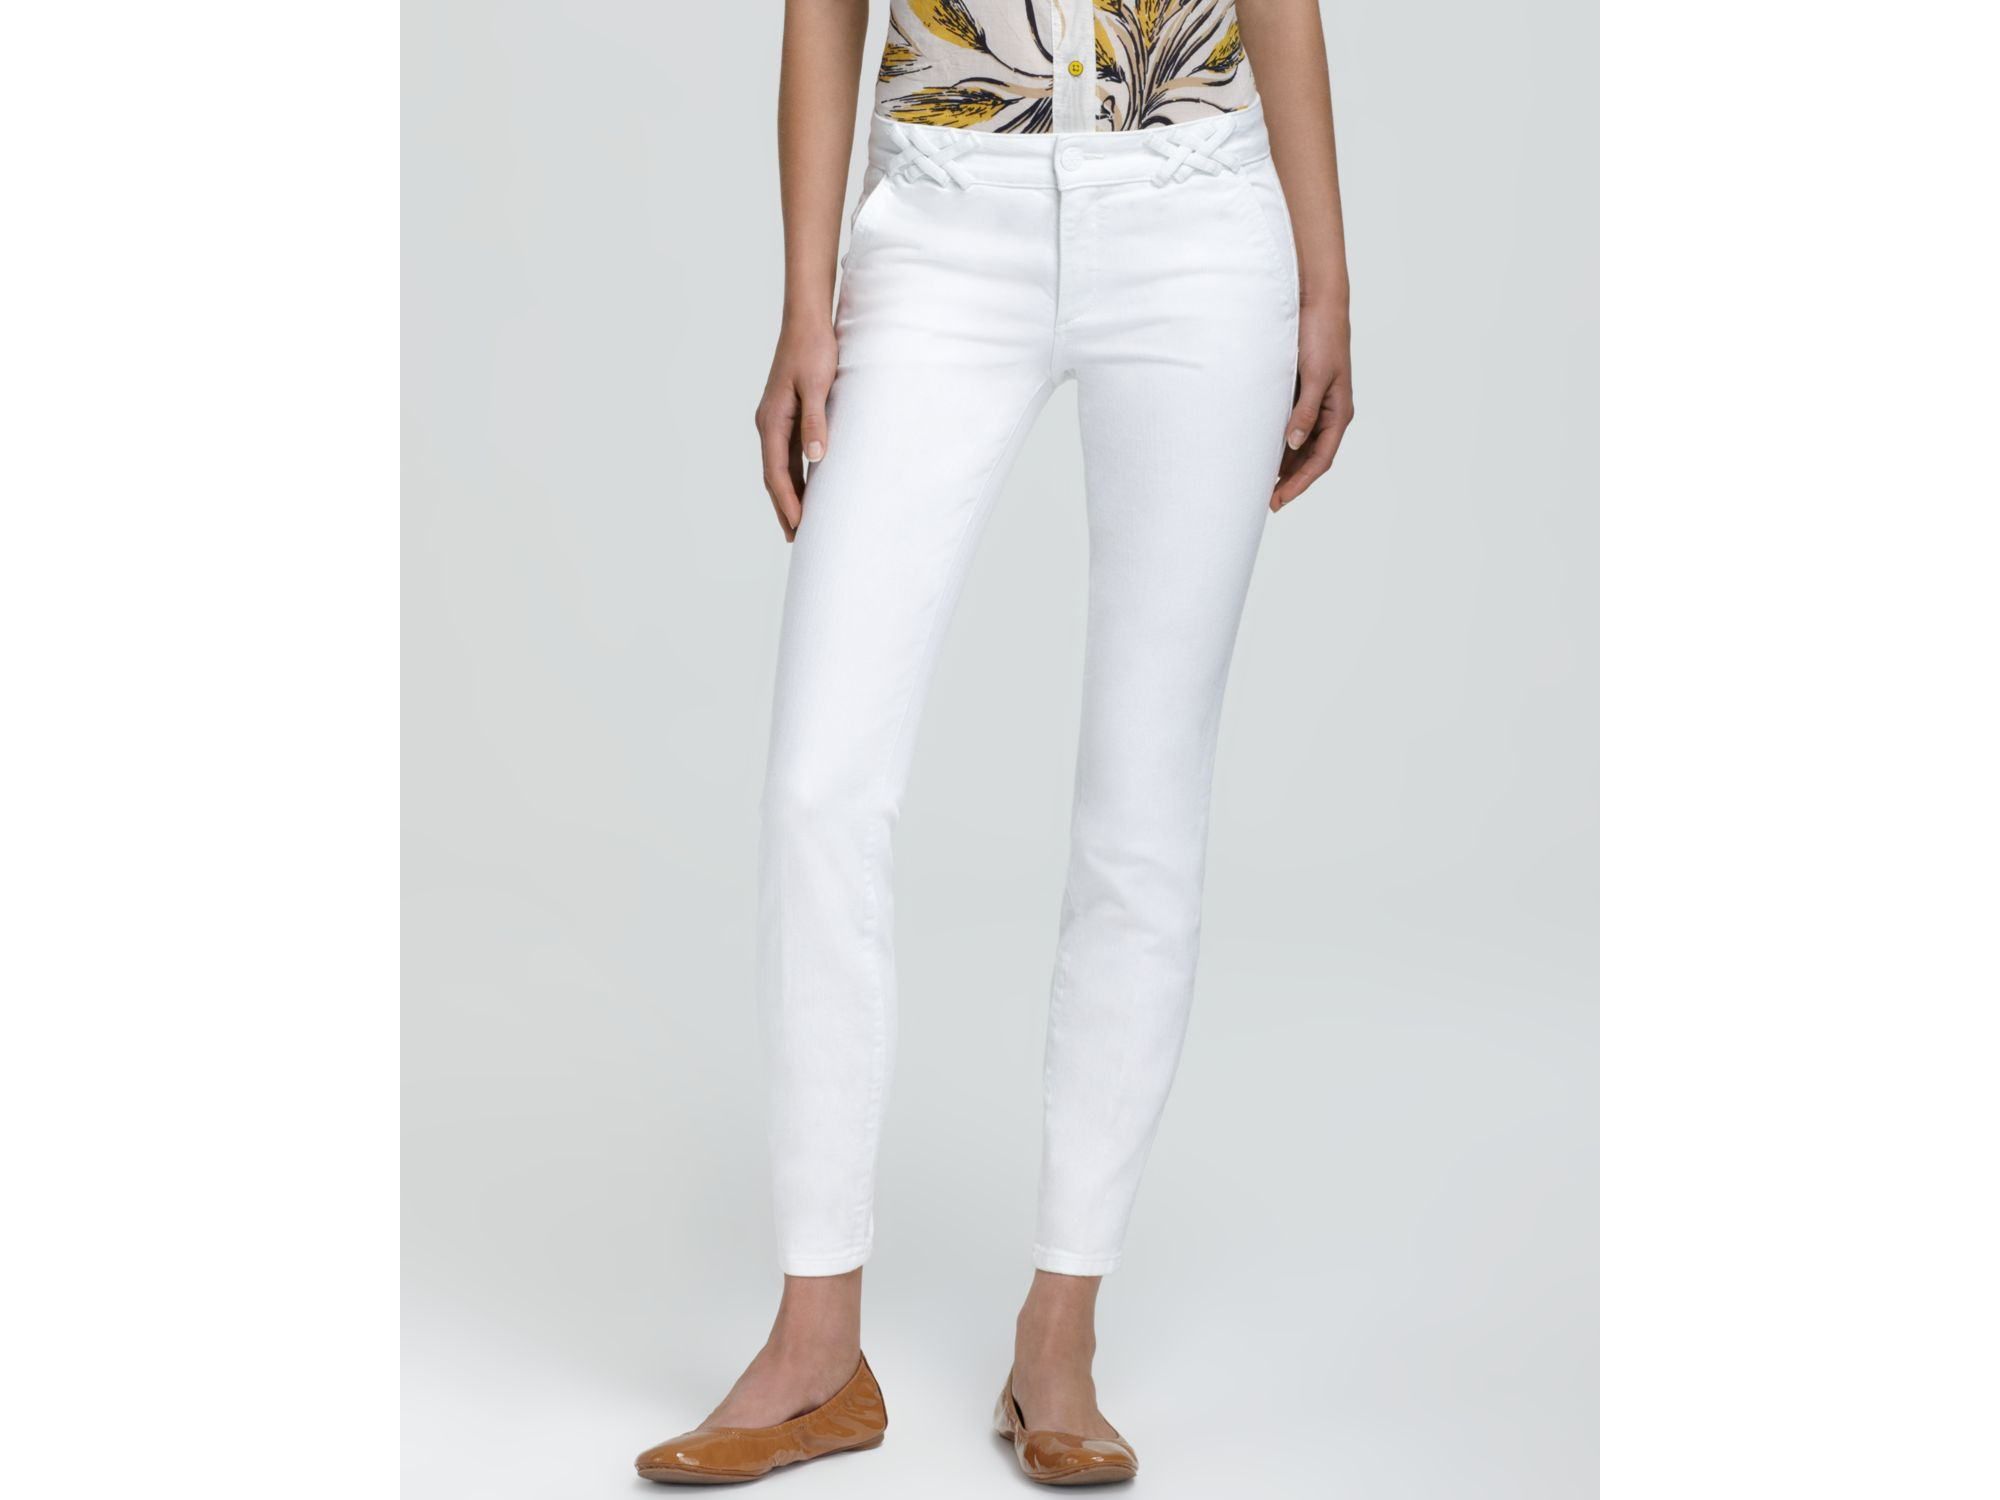 cropped straight leg jeans - White Tory Burch Clearance How Much HiLmzY1k